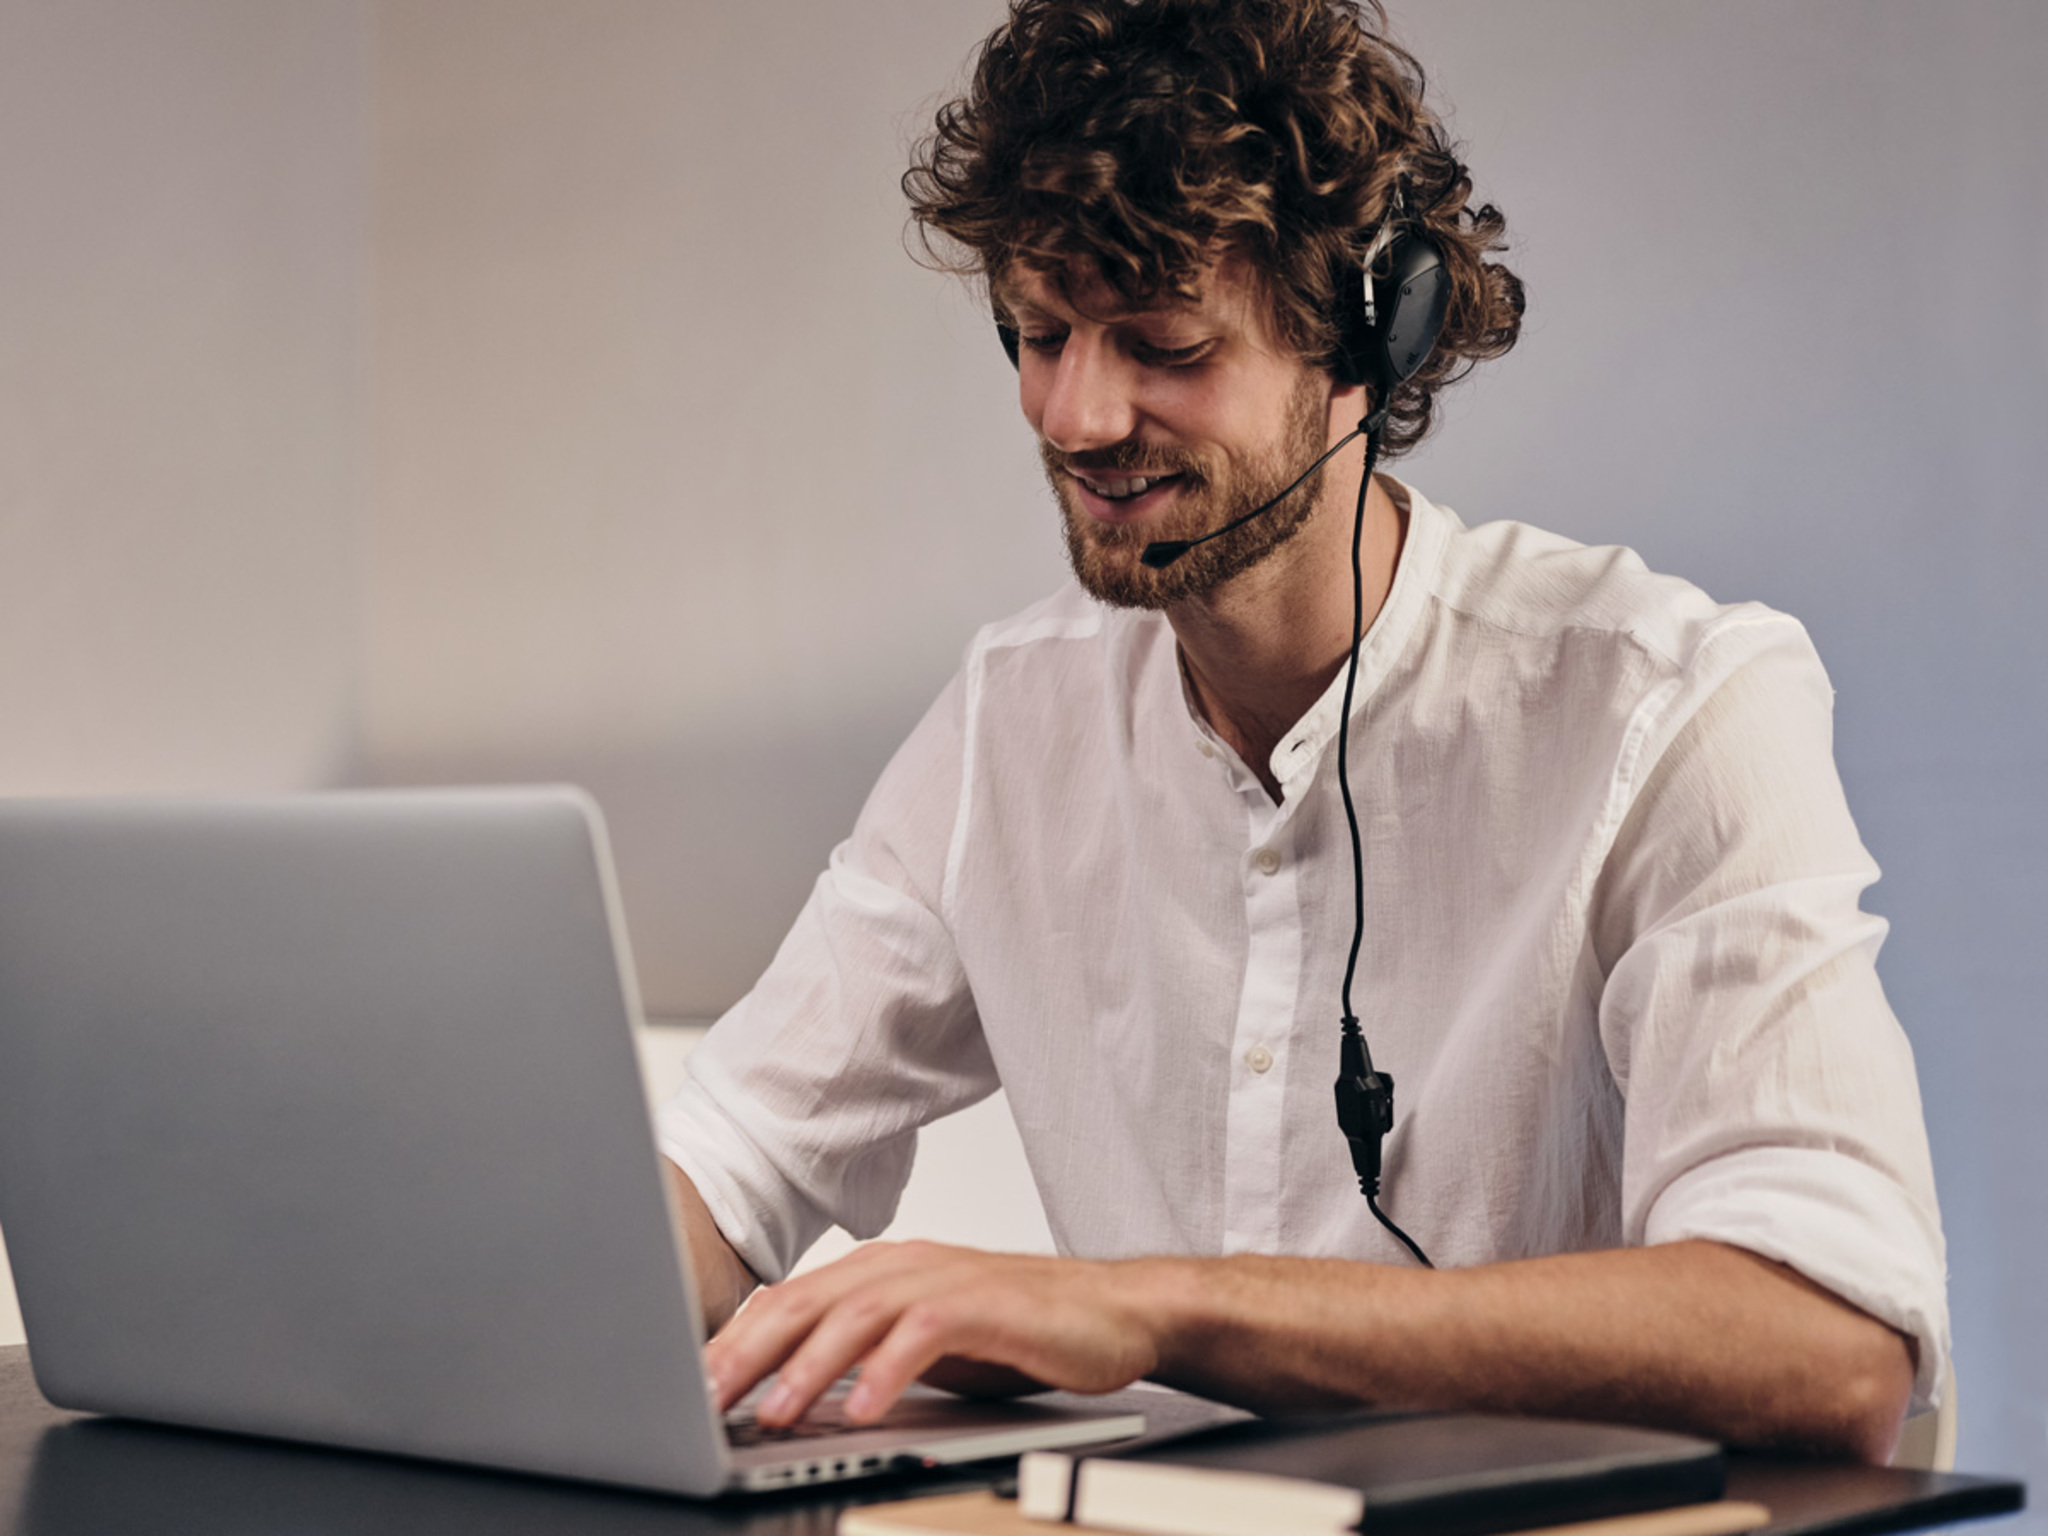 Man using XS and BoomPro Microphone to work from home